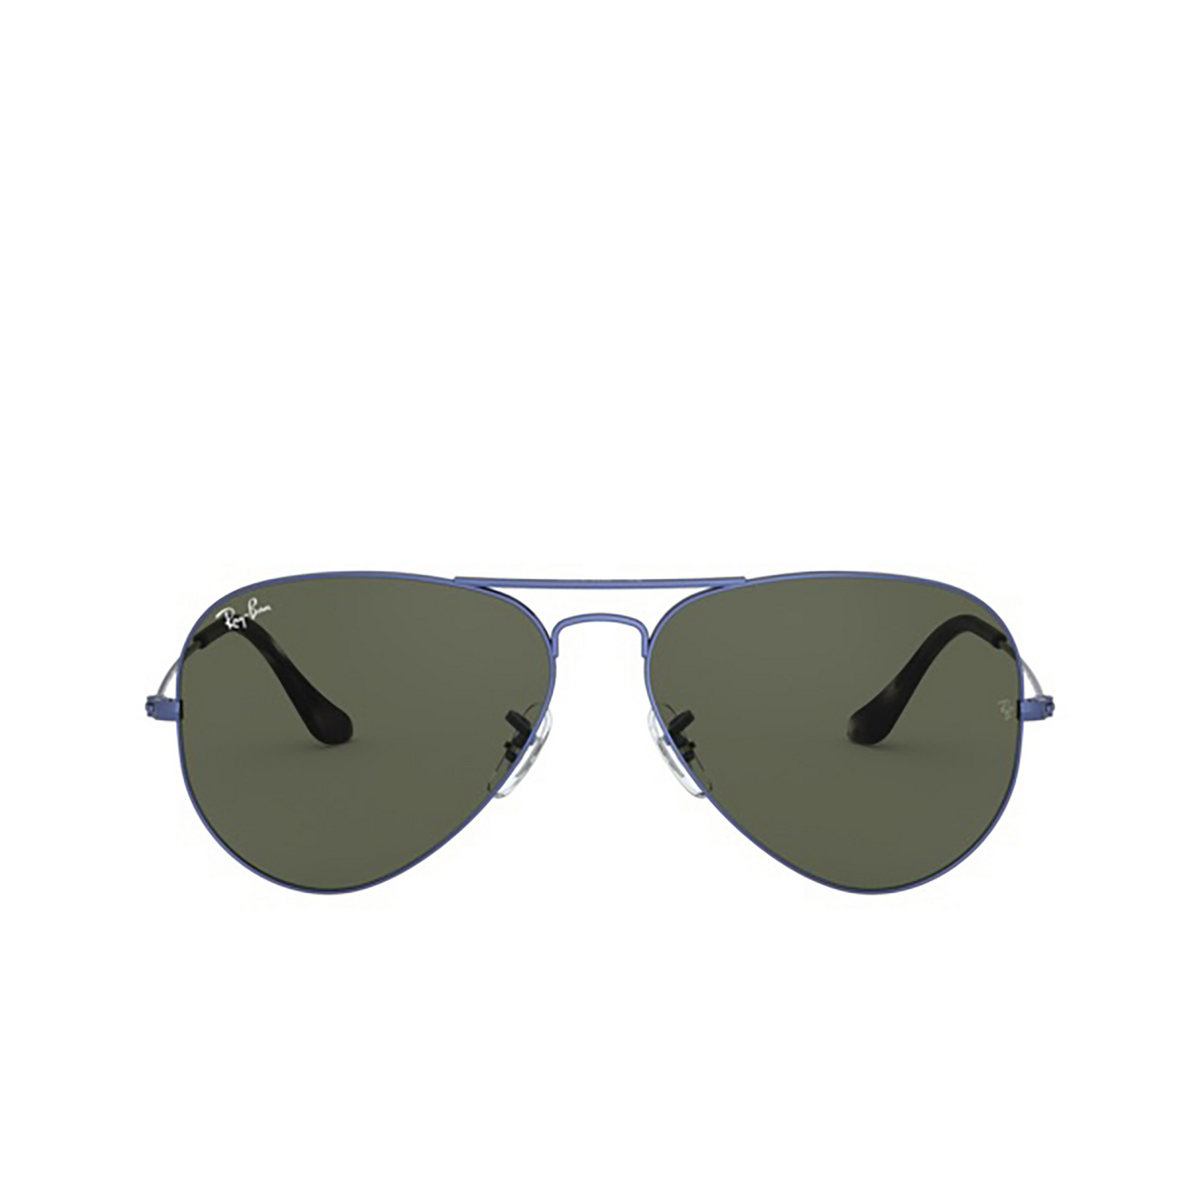 Ray-Ban® Aviator Sunglasses: Aviator Large Metal RB3025 color Sand Transparent Blue 918731 - front view.